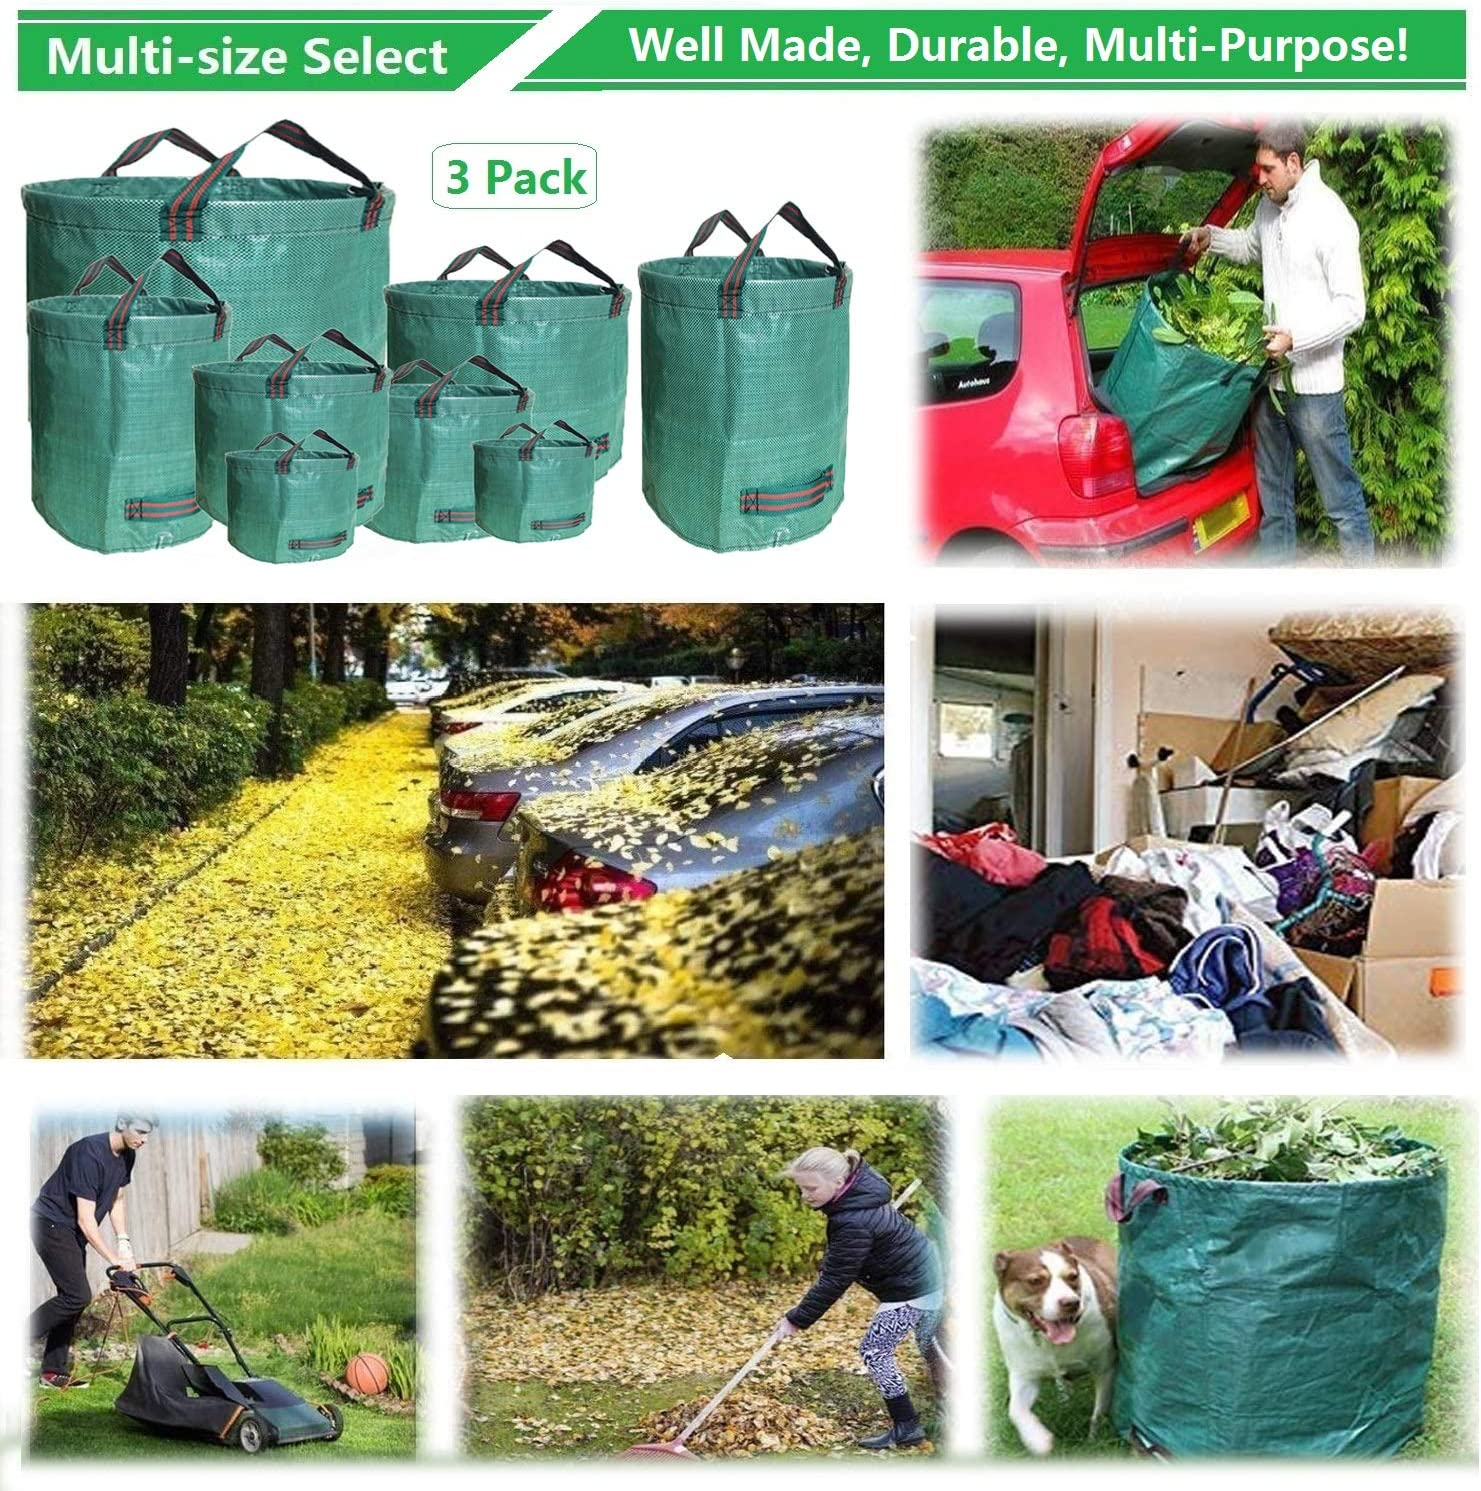 Garden Bags Rlloy 2 Pack 480L 106 Gallons Hands-Free Dustpan Making Yard Clean Up a Snap Large Reusable Garden Waste Bags Collapsible Lawn and Yard Waste Containers for Lawn Pool Garden Leaf